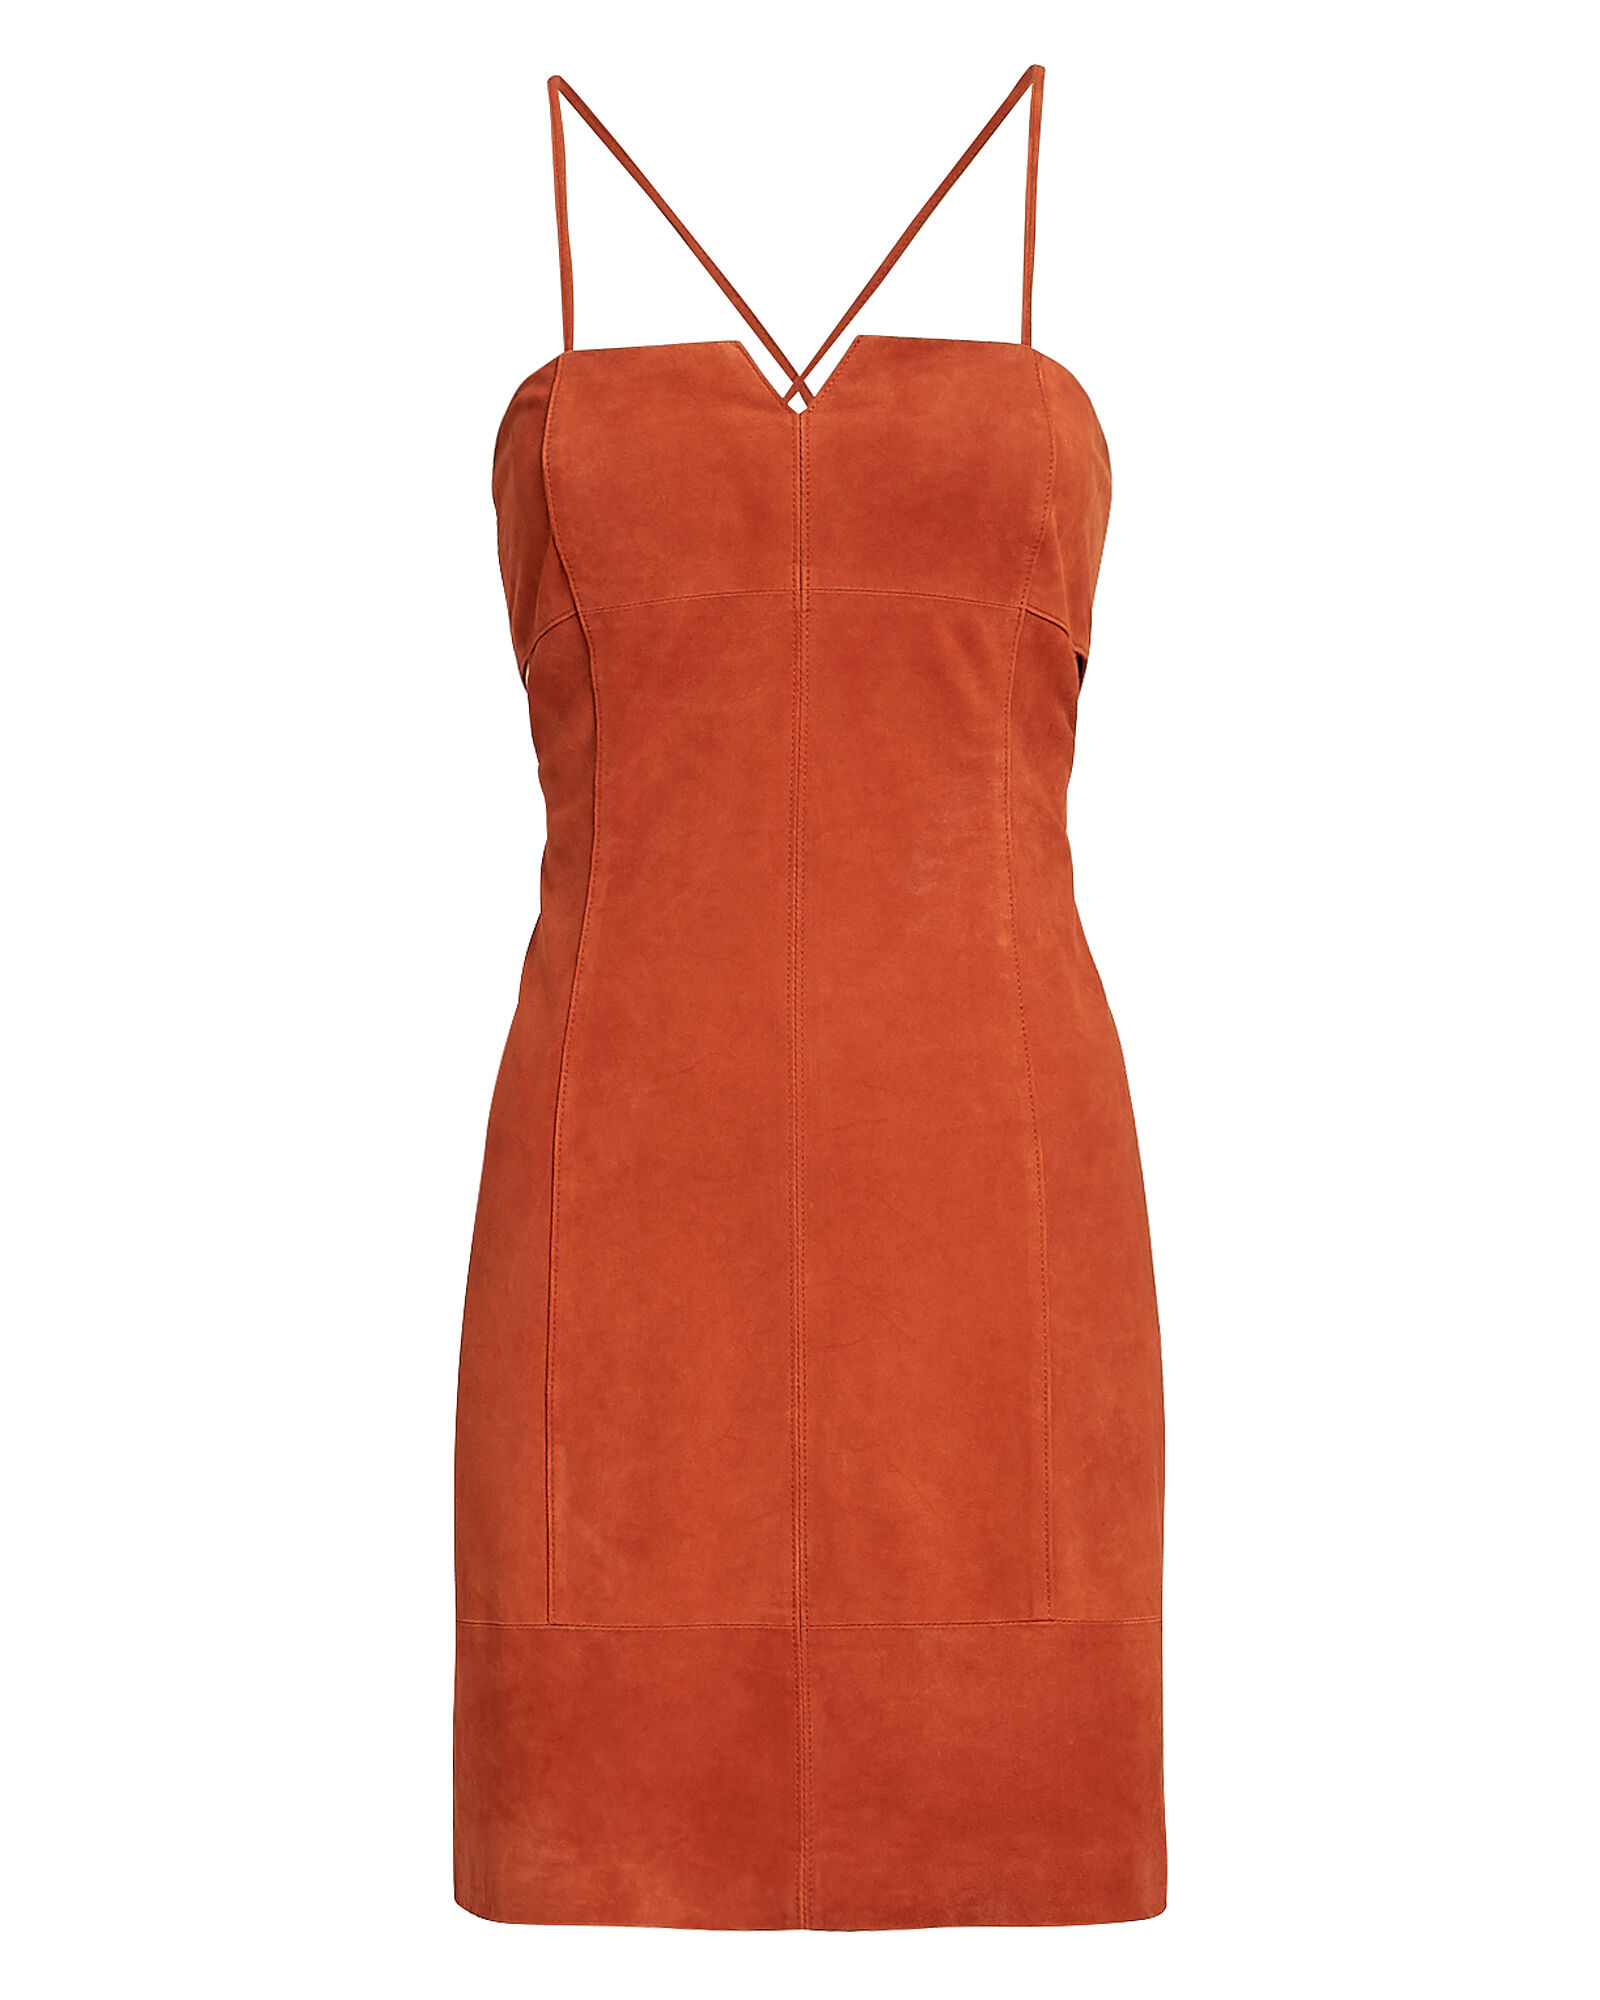 Marissa Suede Mini Dress, CORAL, hi-res